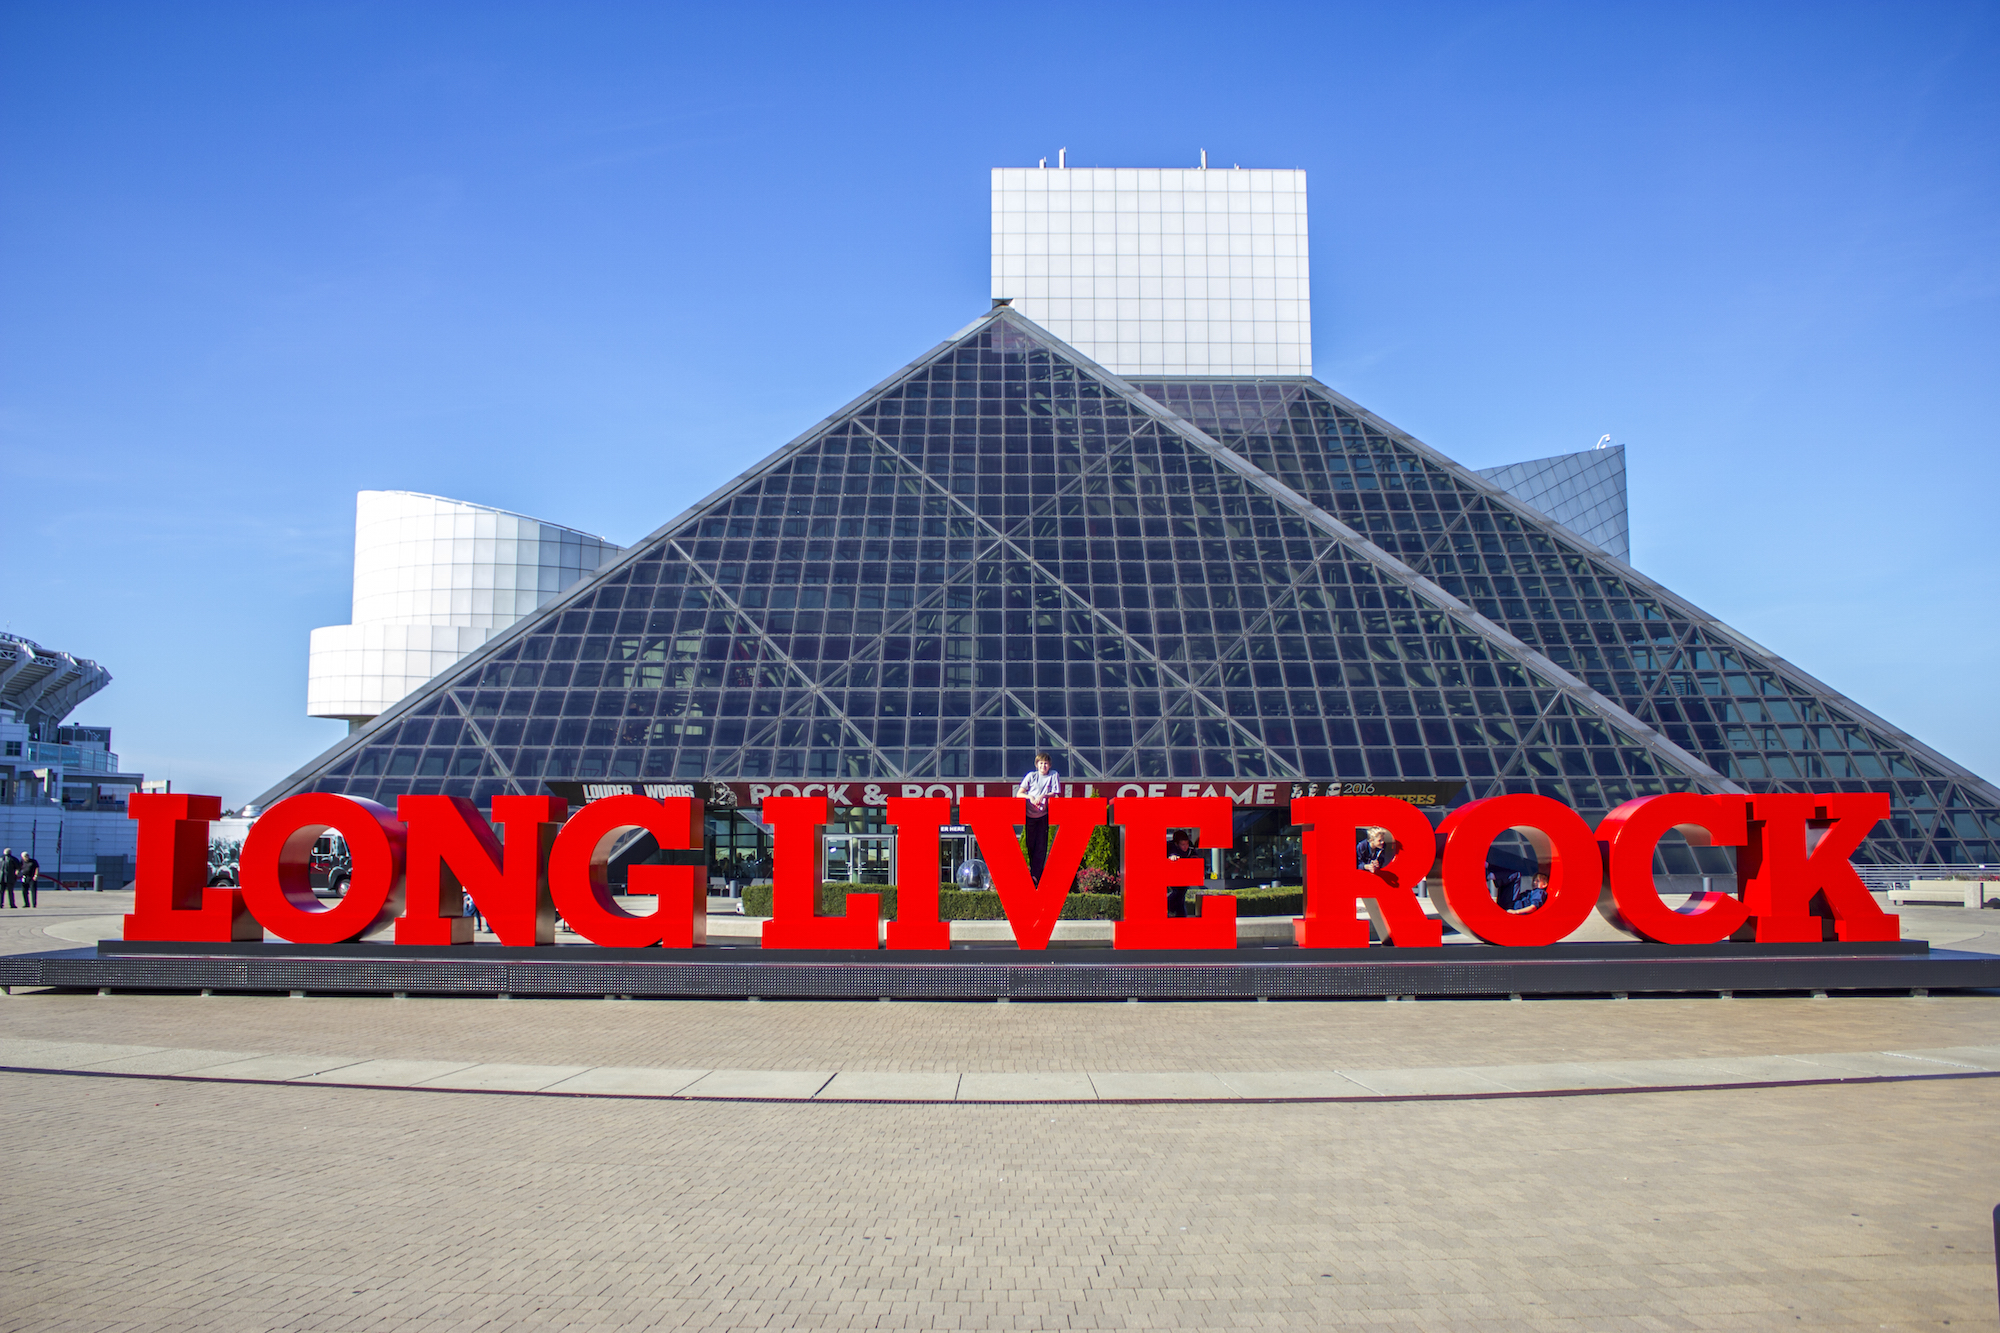 Distinctive and much photographed entrance to the Rock & Roll Hall of Fame.